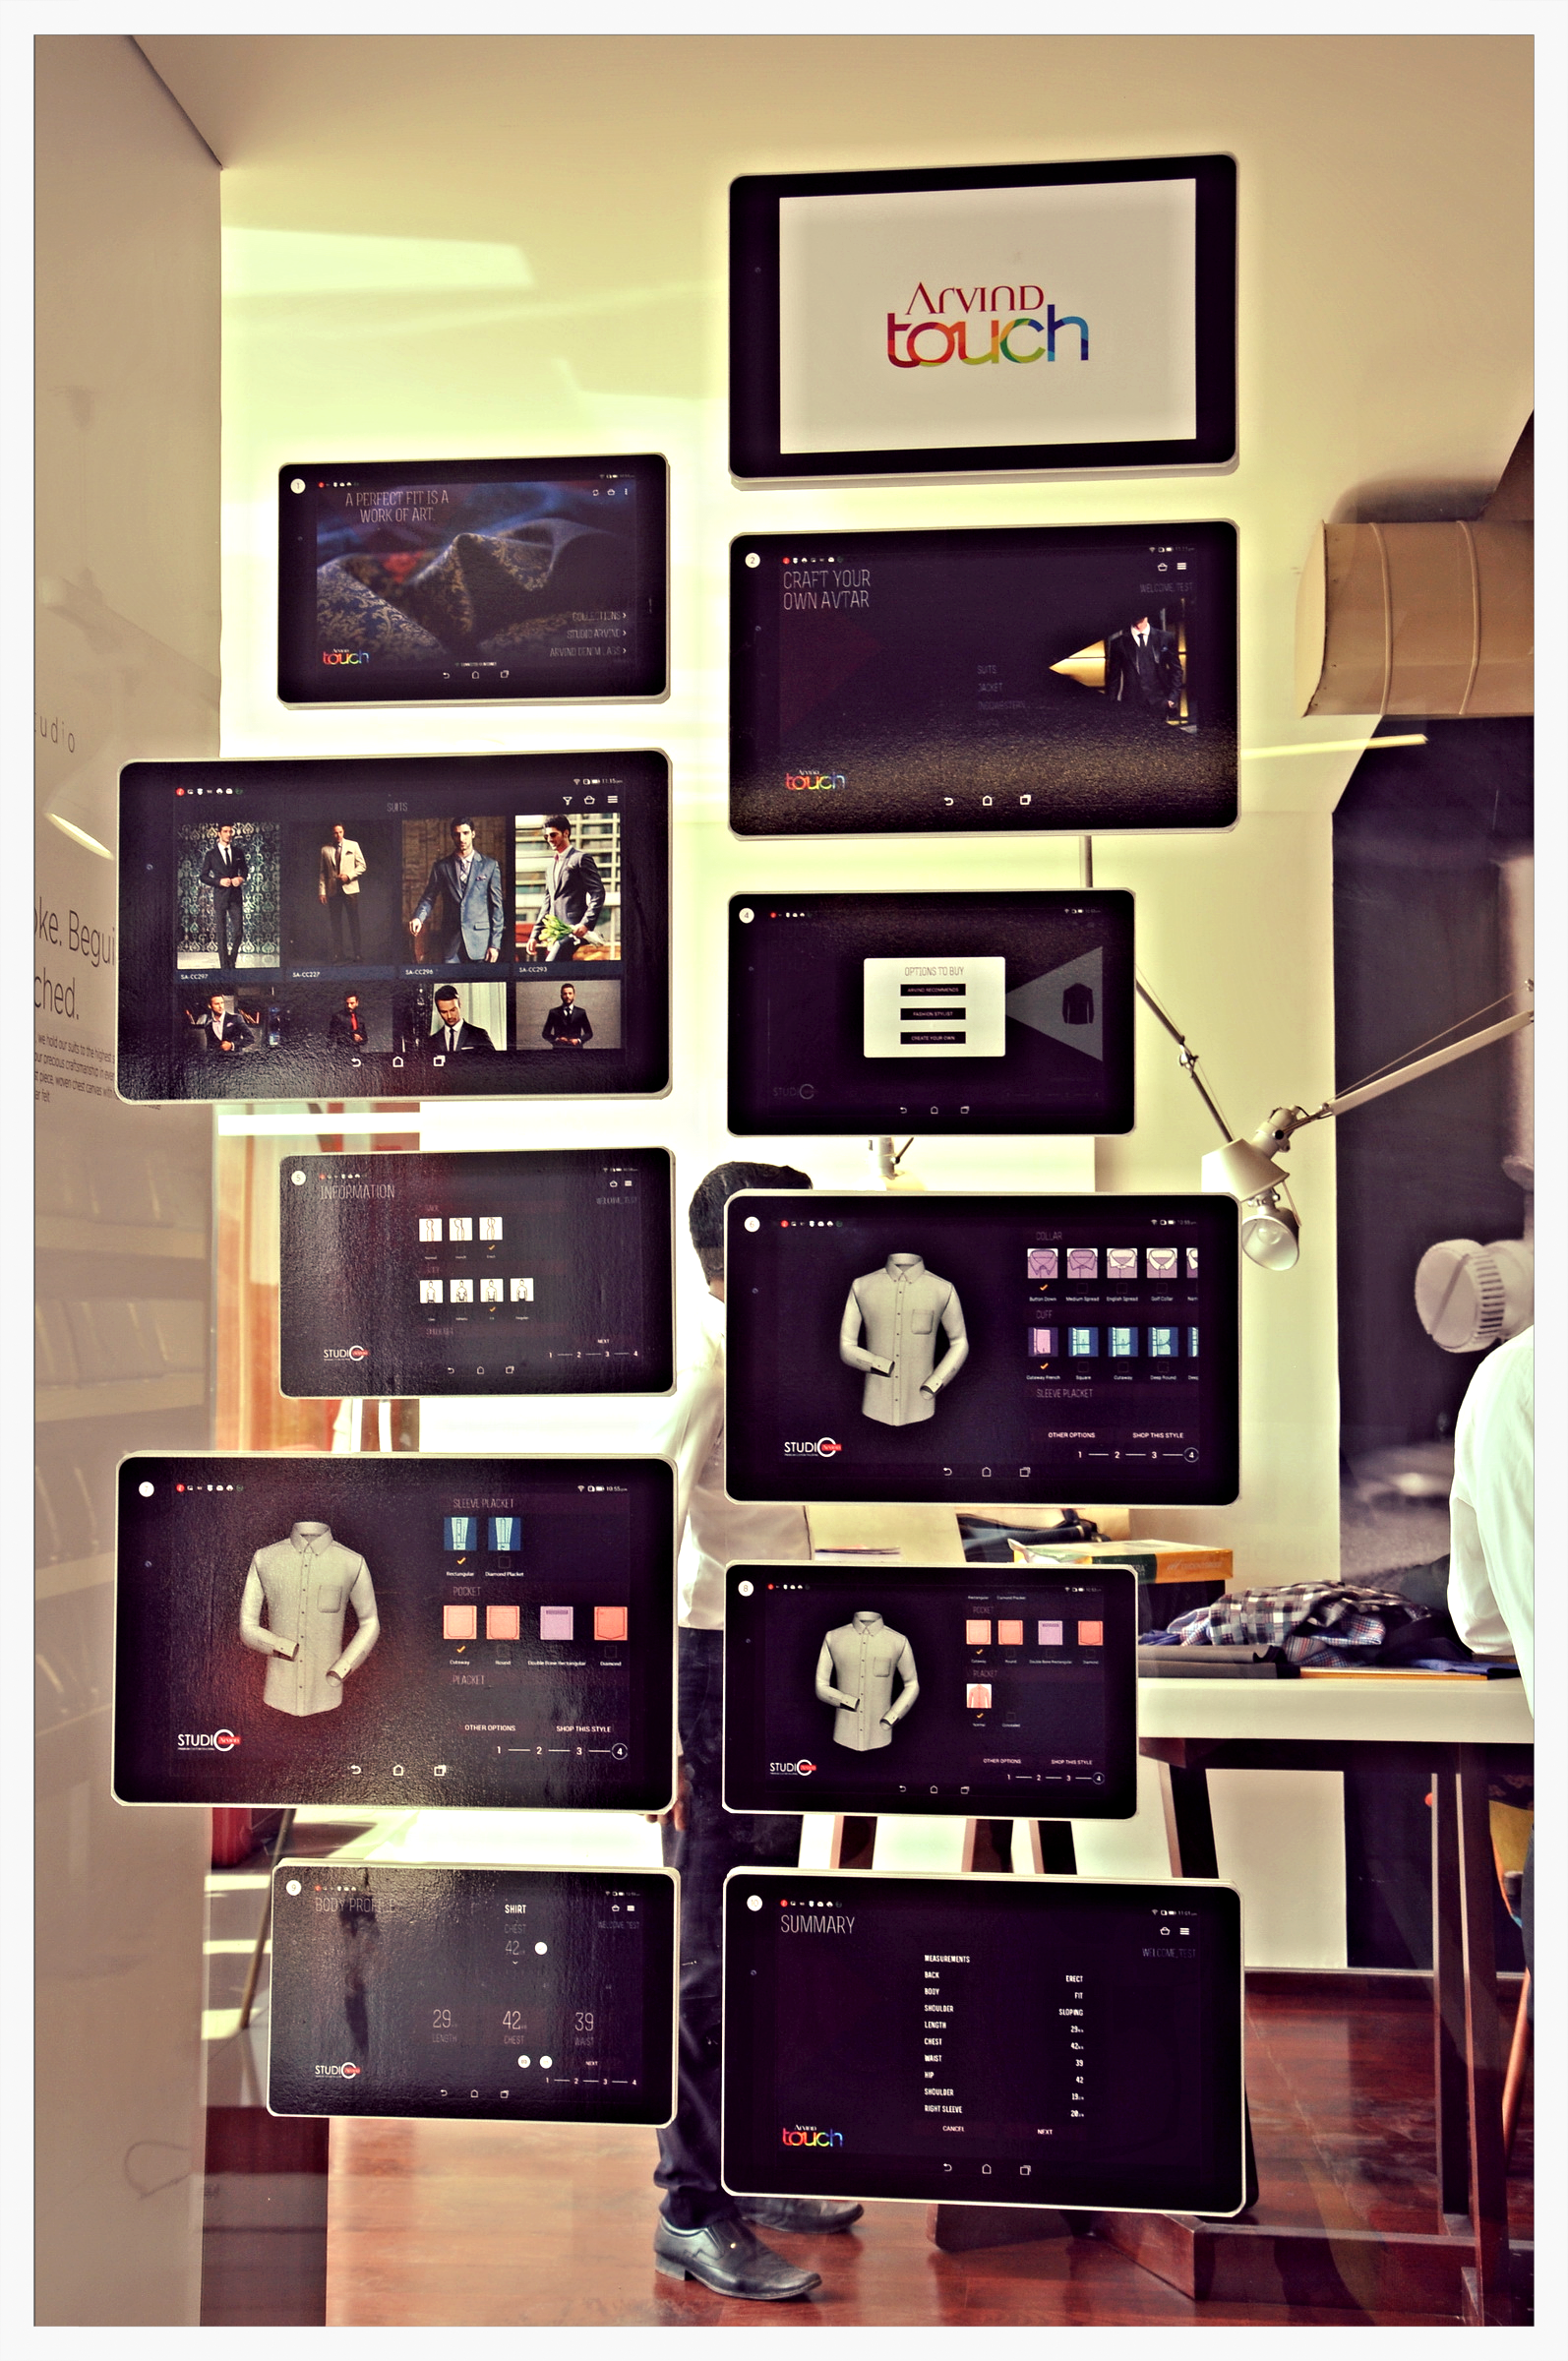 Display of Snapshots of various pages of the app -TOUCH at The Arvind Store - Jayanagar, Bangalore.